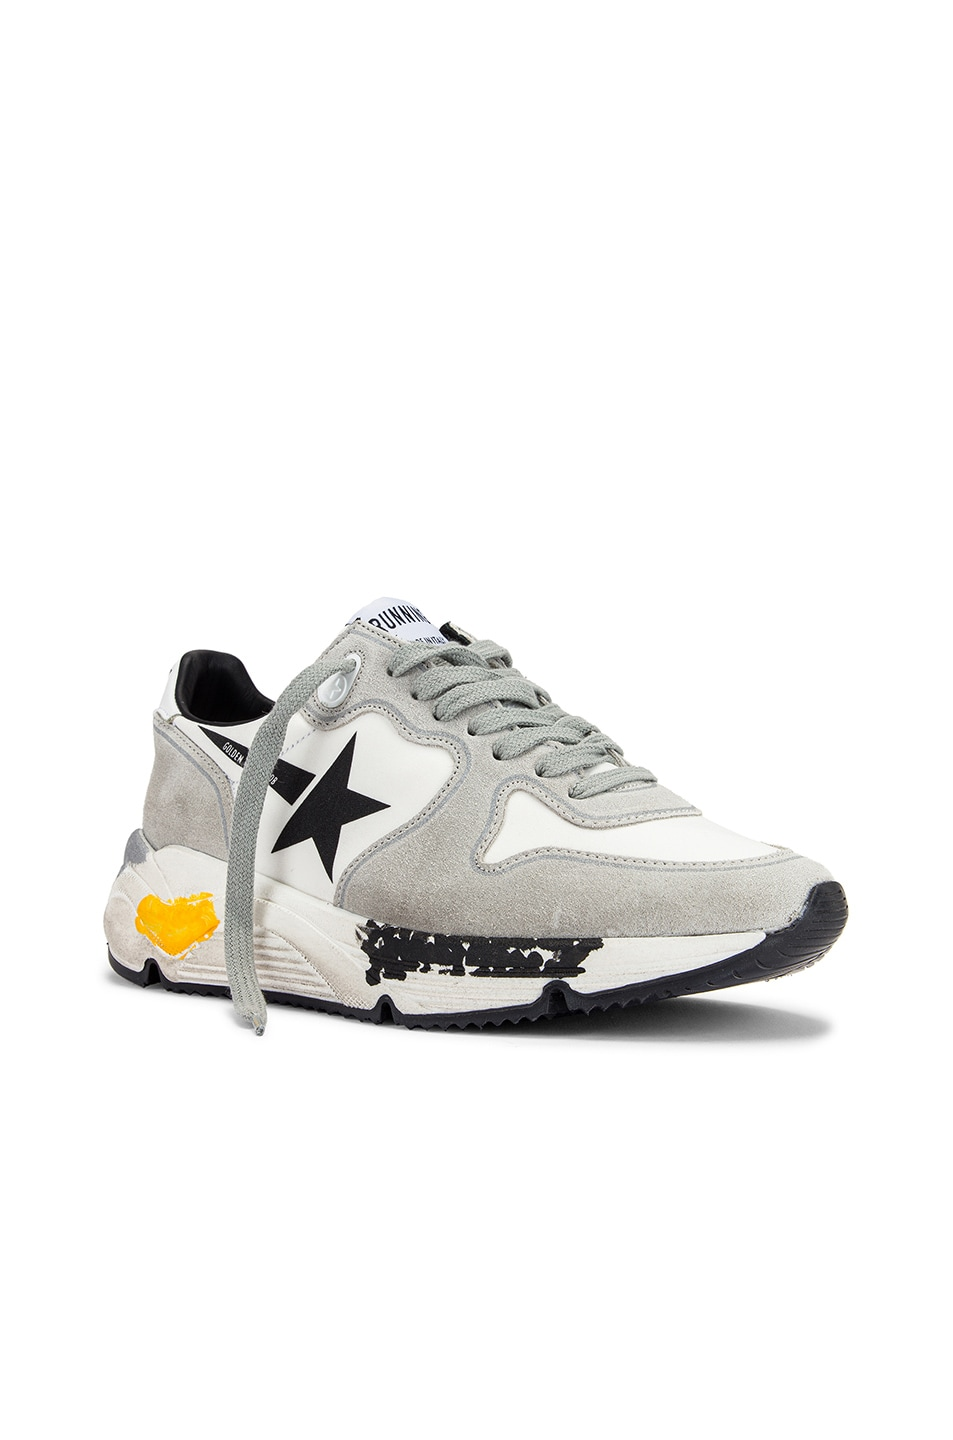 Image 2 of Golden Goose Running Sole Sneaker in White Lycra & Black